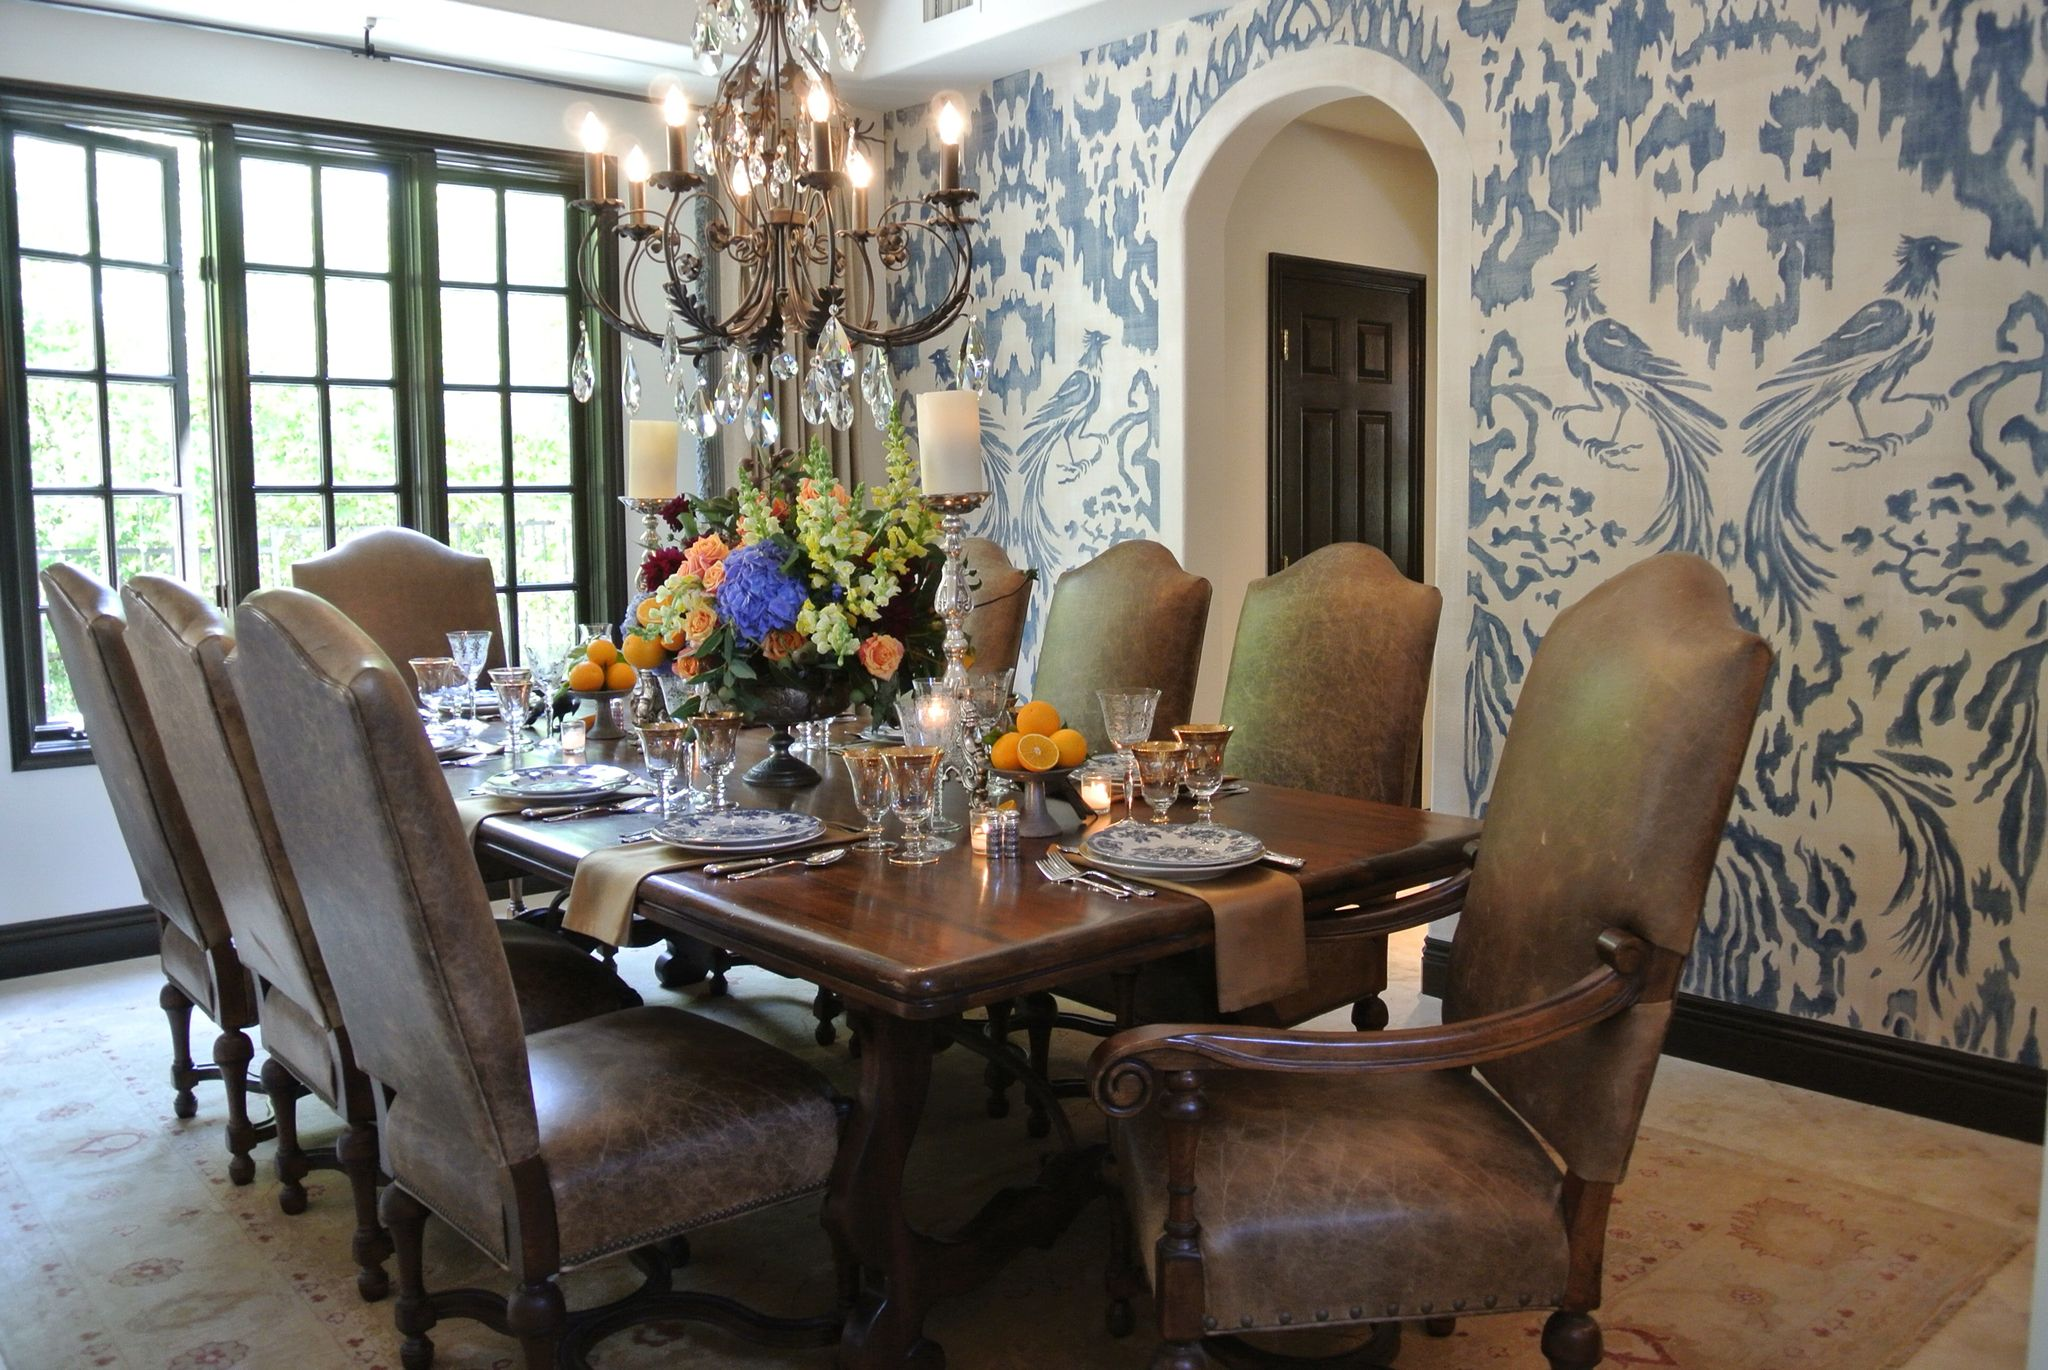 Spanish Dining Room Interior Design By Leanne Michael Luxe Lifestyle